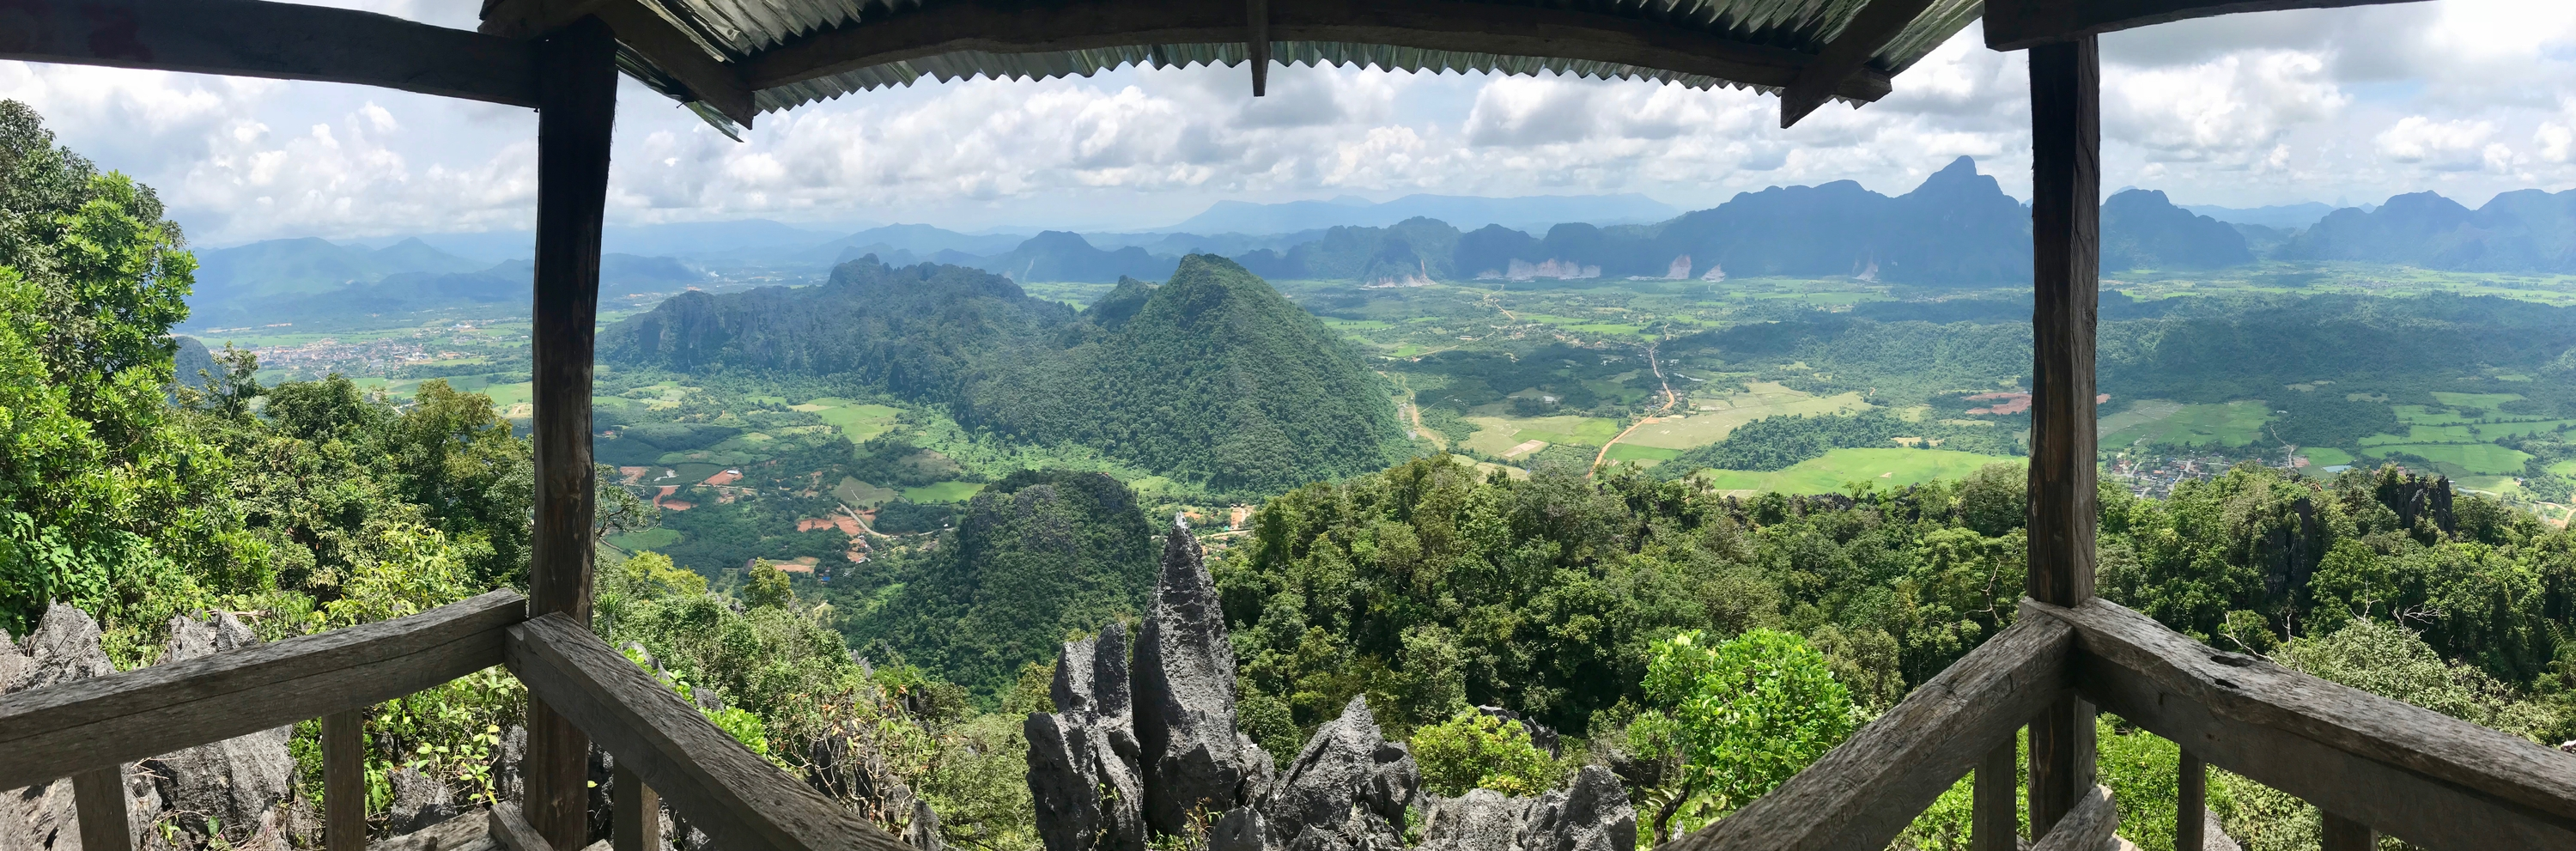 Panorama from the top of Pha Ngeun, a hike in Vang Vieng